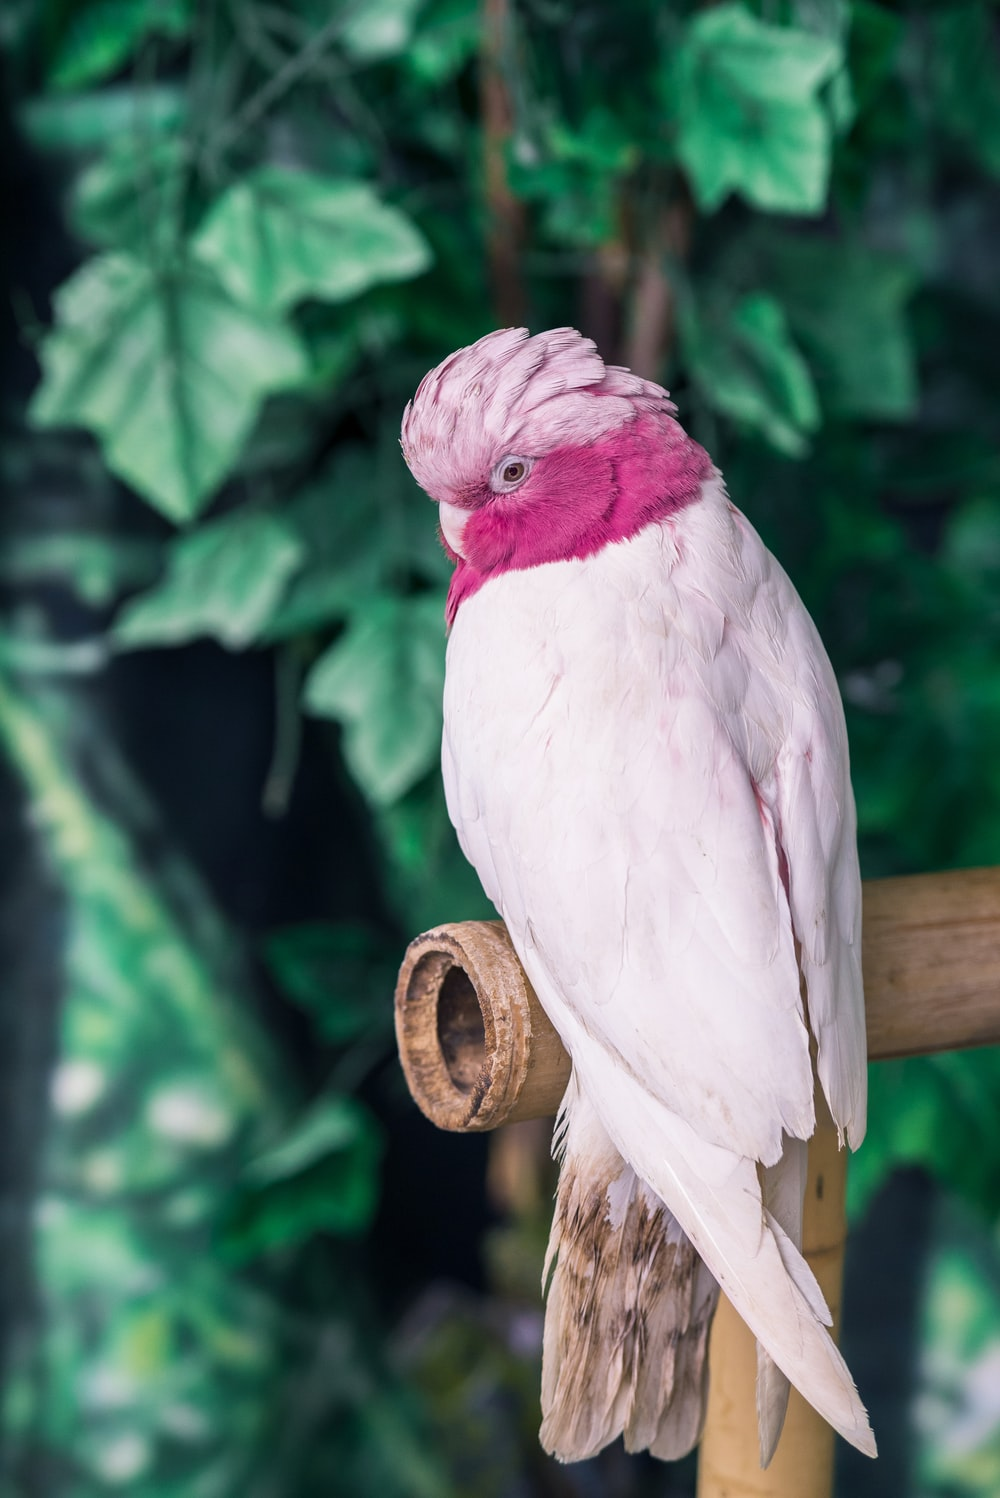 pink and white bird on bamboo